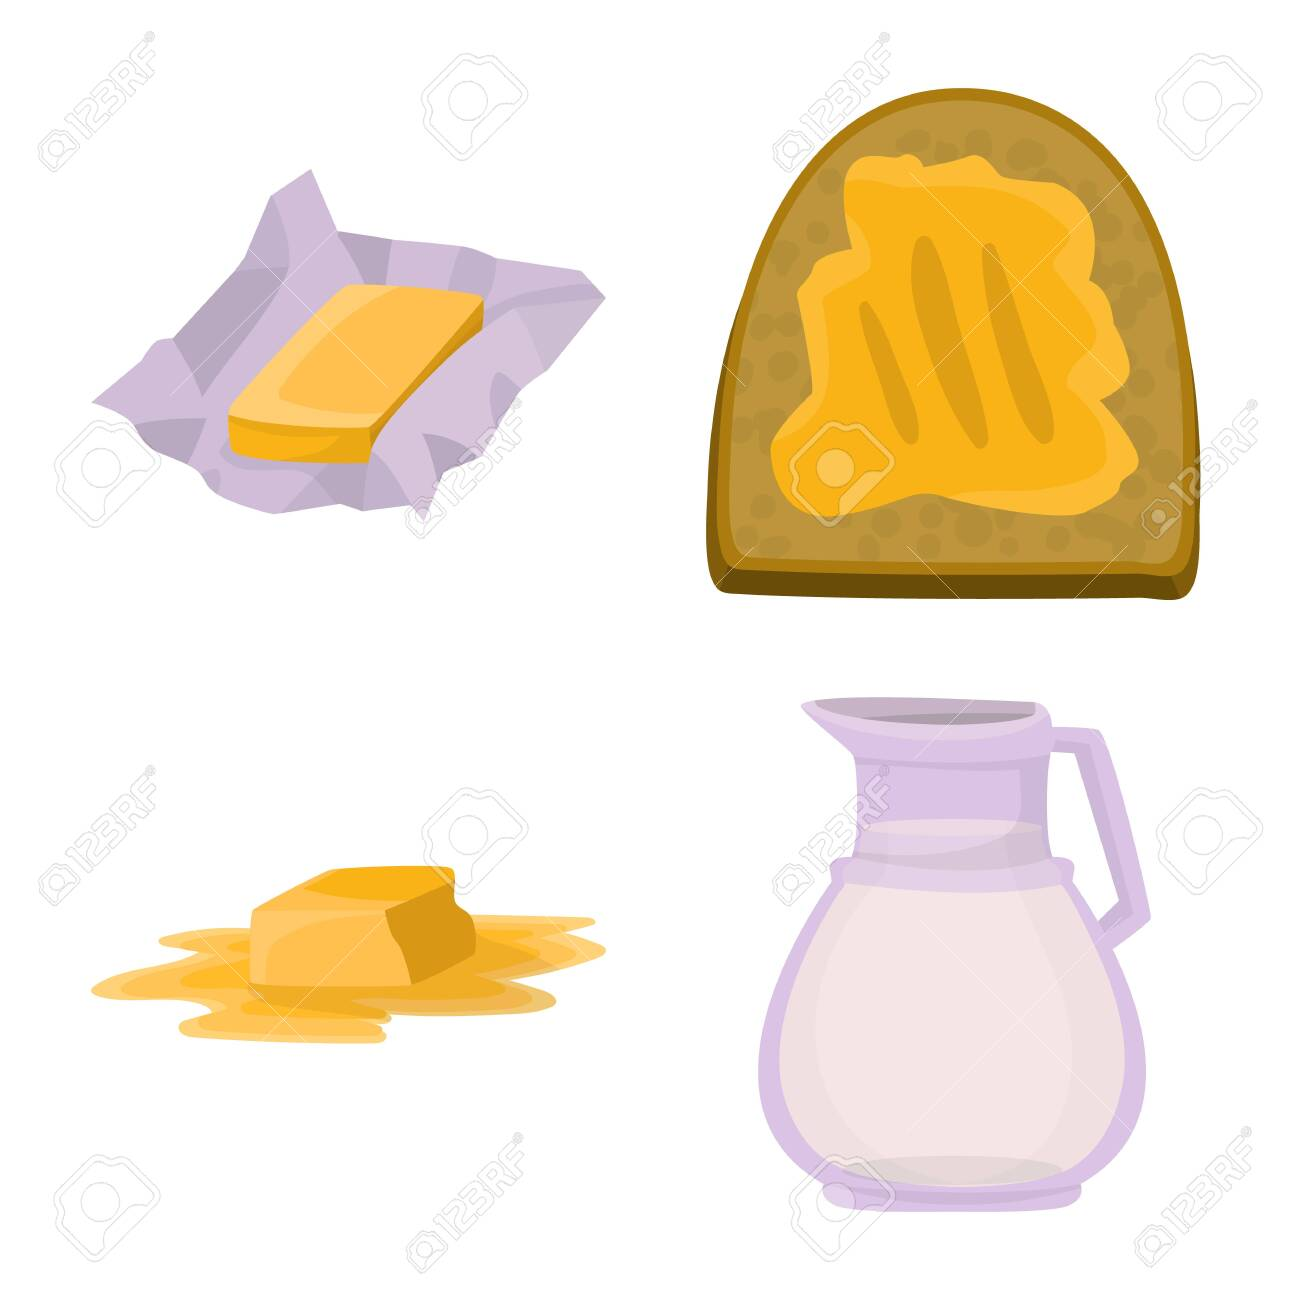 Isolated object of food and dairy icon  Collection of food and